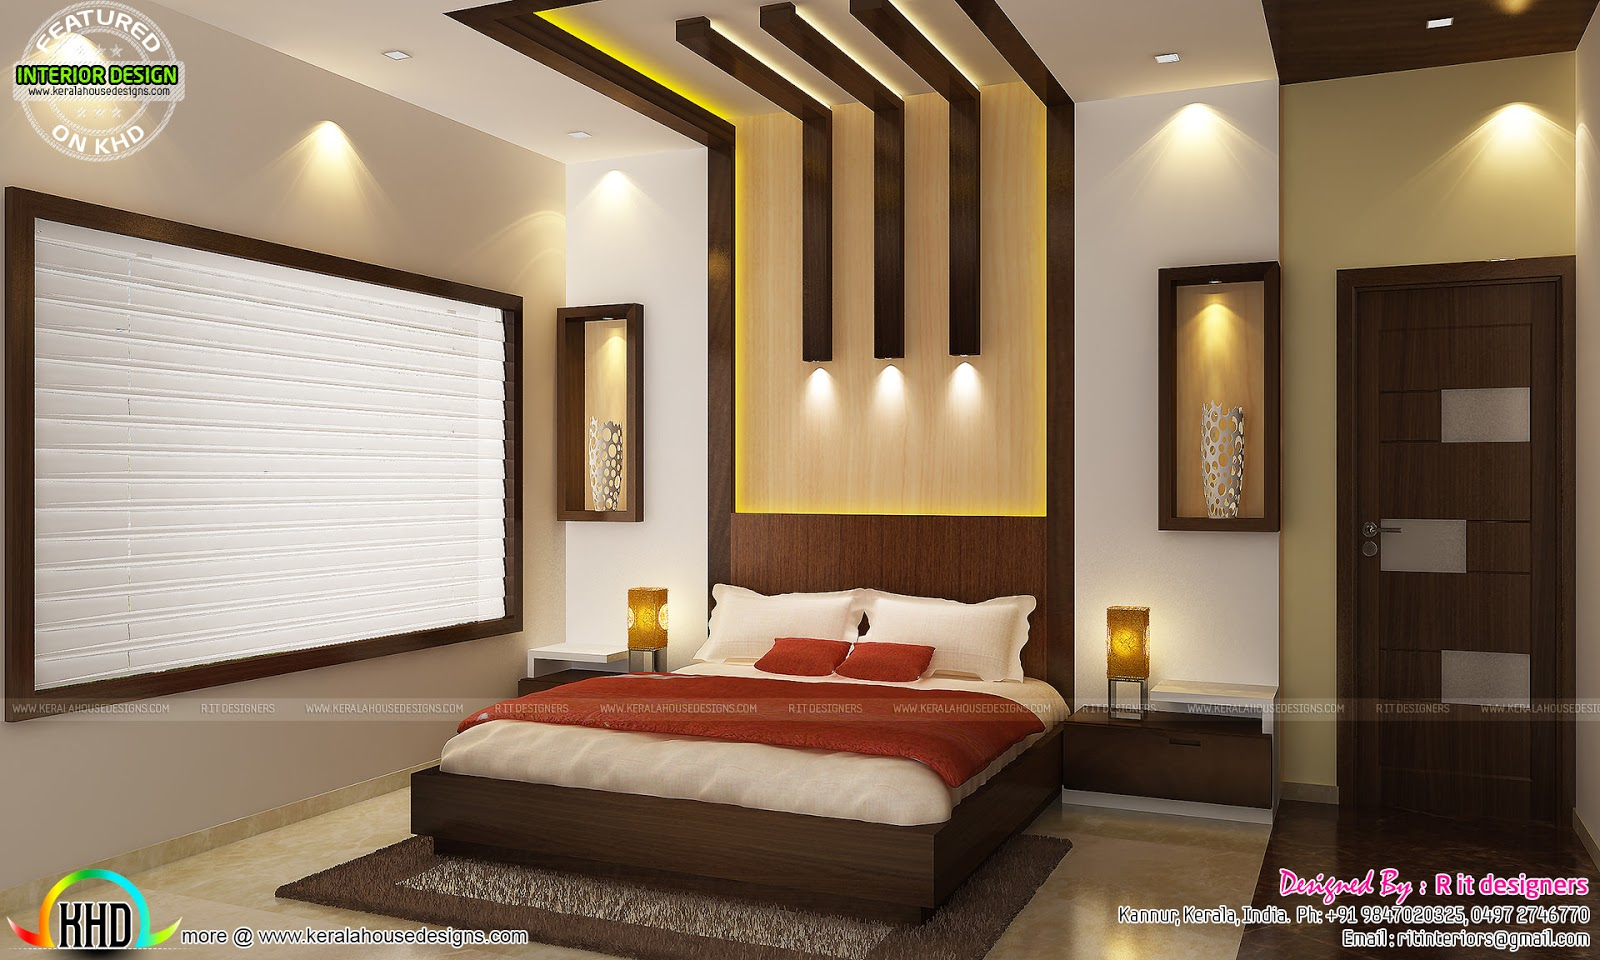 Kitchen living bedroom dining interior decor kerala for Bed room interior design images